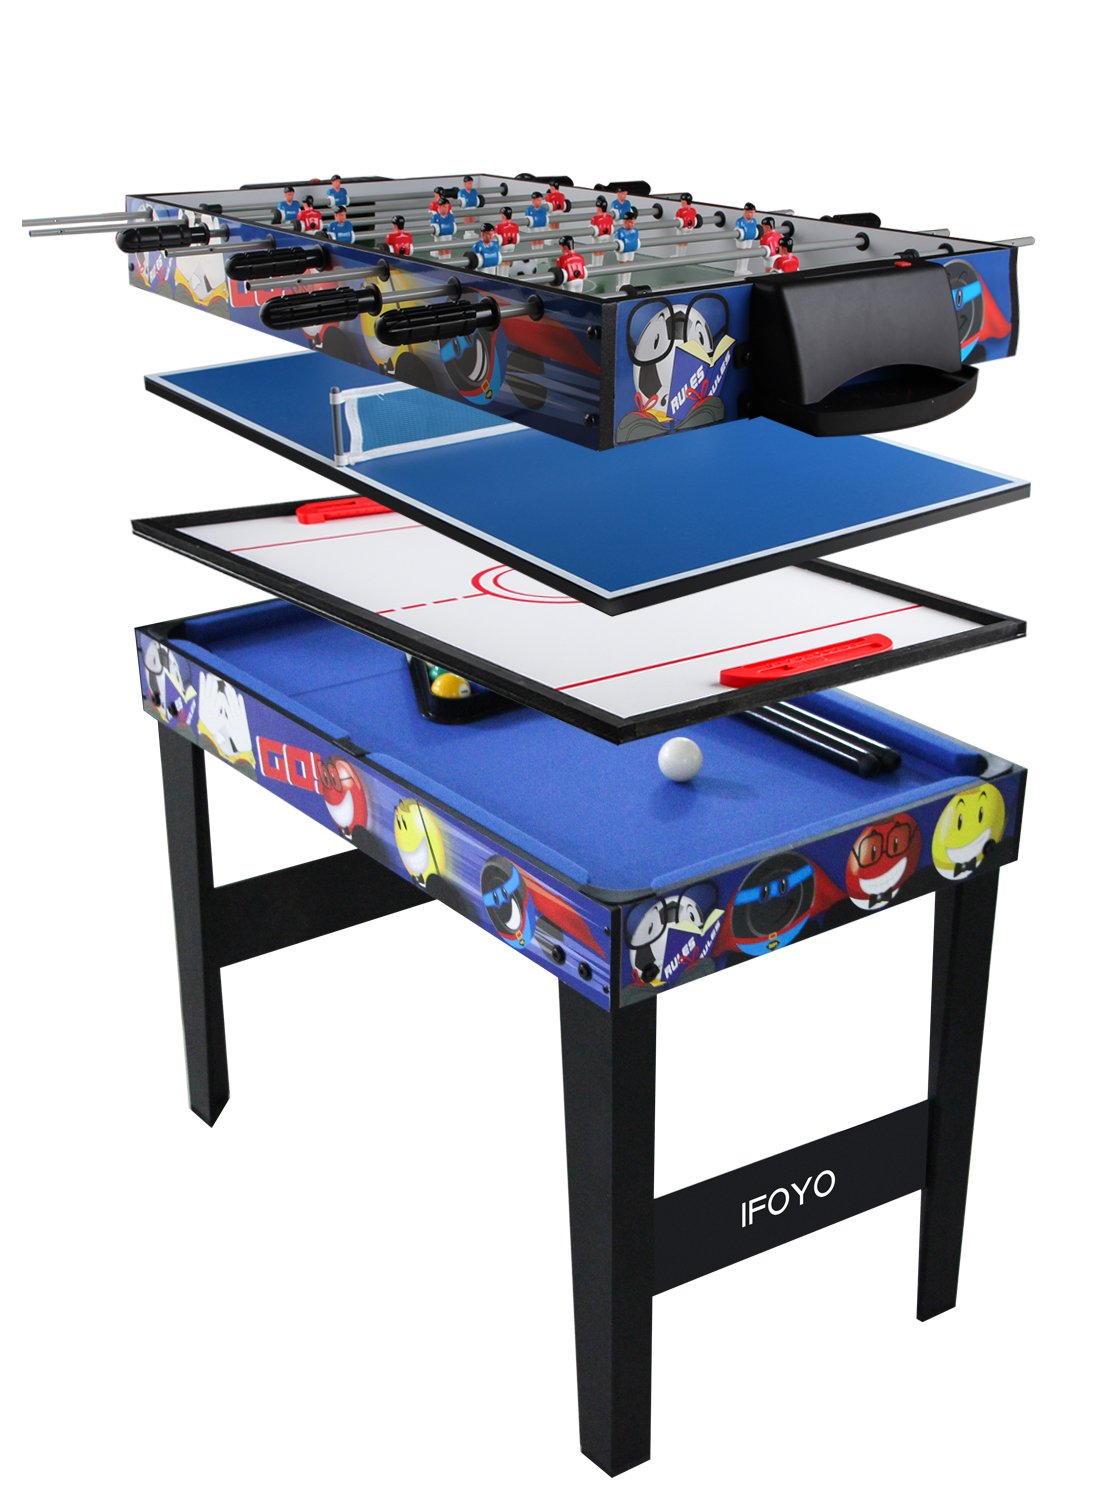 4 in 1 Multi Game Table for Kids, IFOYO 31.5 Inch Steady Combo Game Table, Soccer Foosball Table, Hockey Table, Pool Table, Table Tennis Table